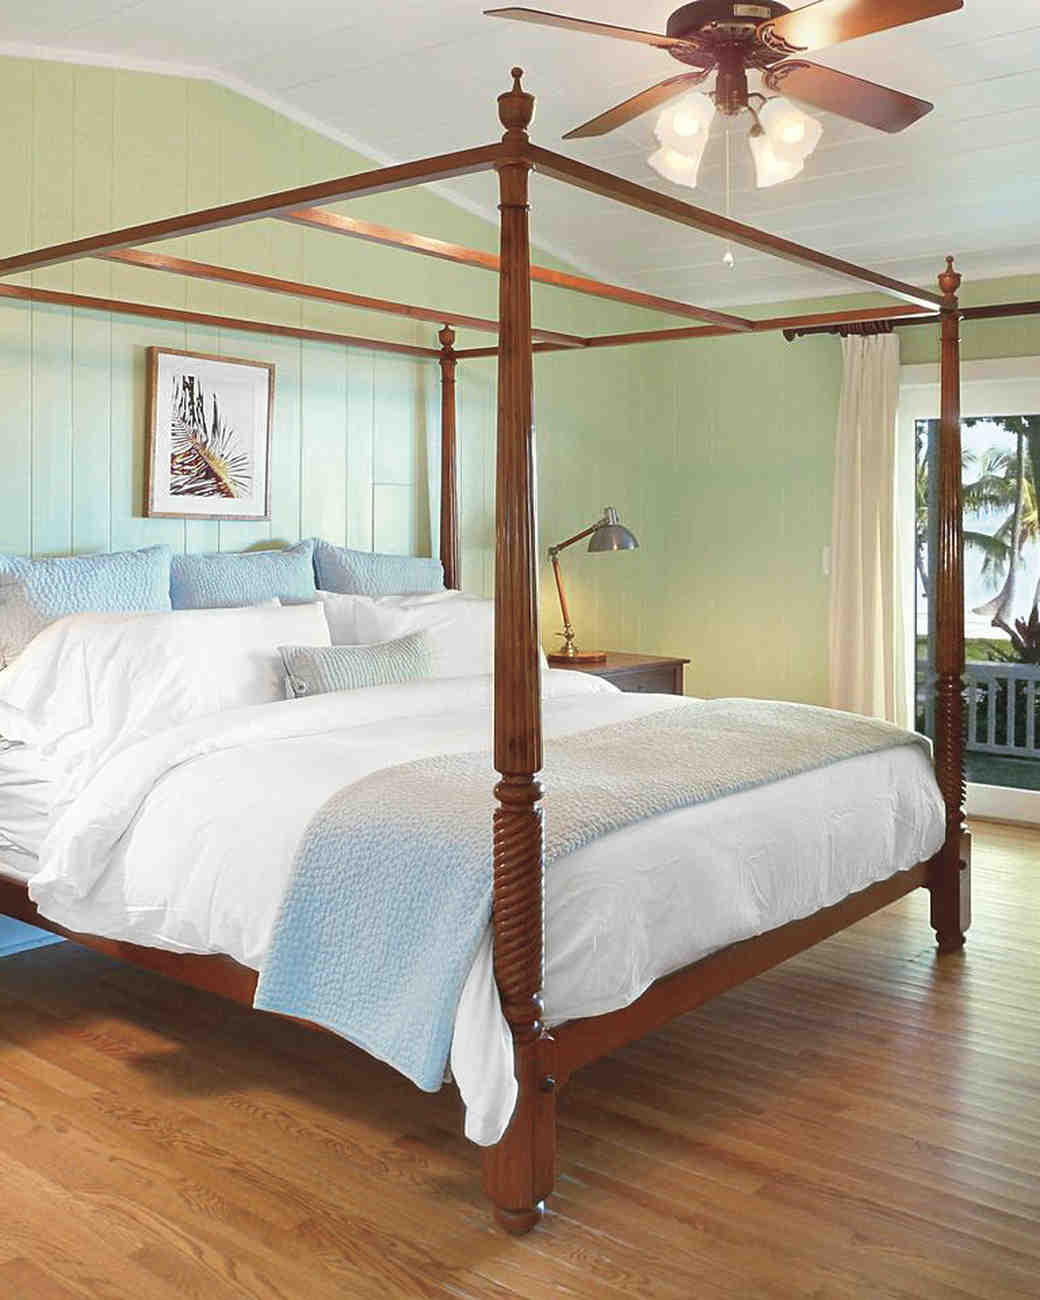 four-poster-bed-mfw8-s112019.jpg